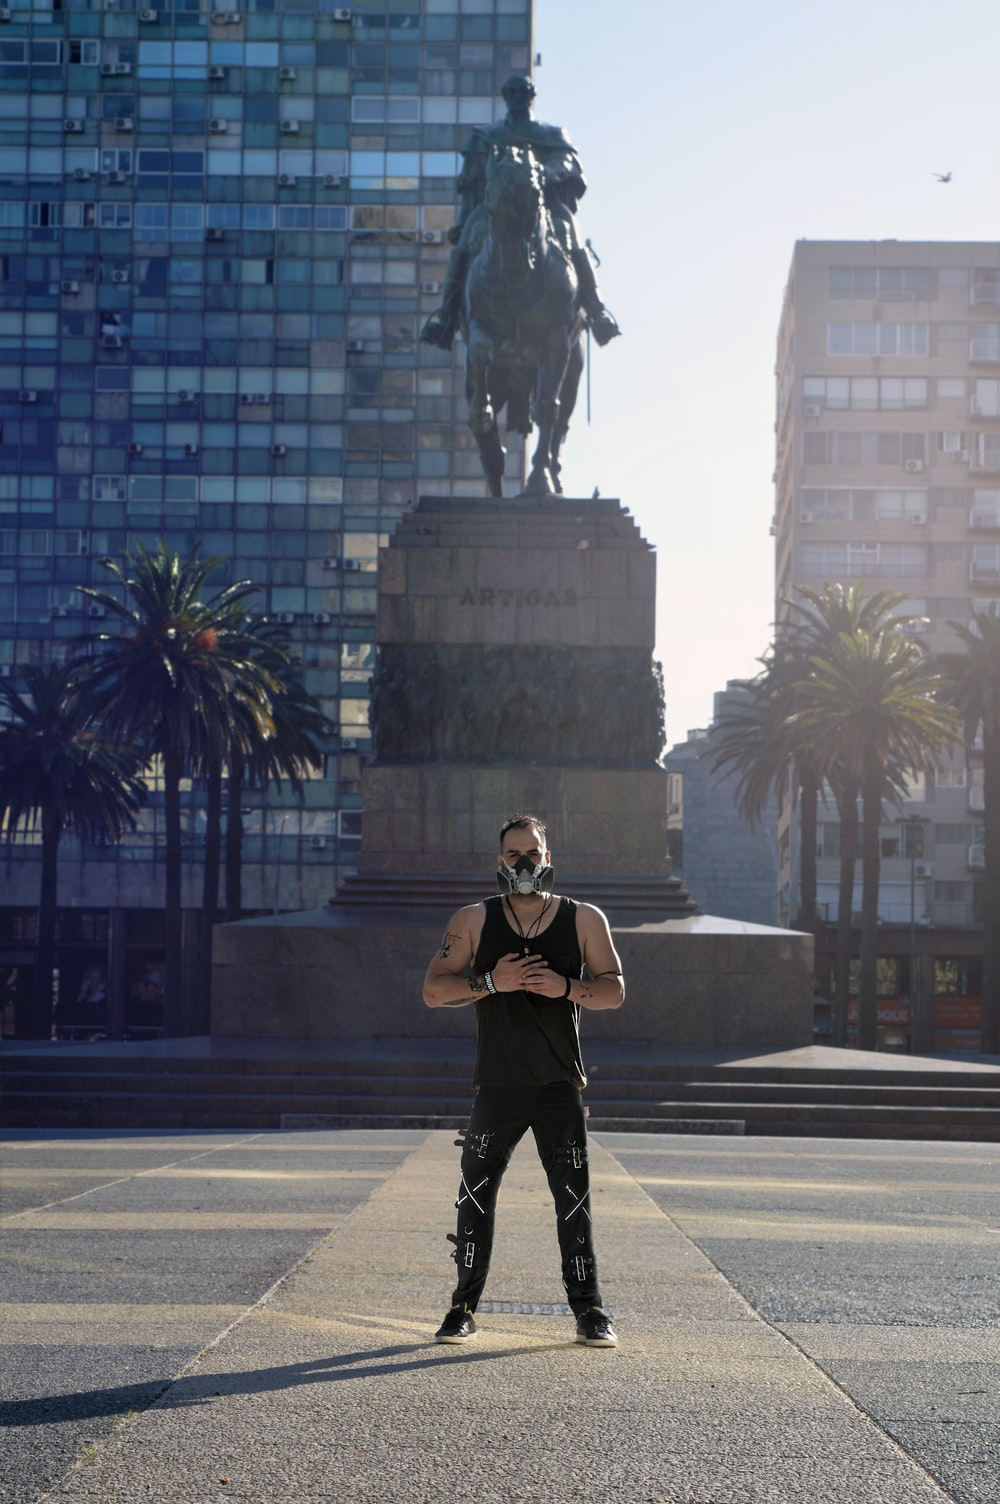 woman in black jacket and black pants standing near black horse statue during daytime